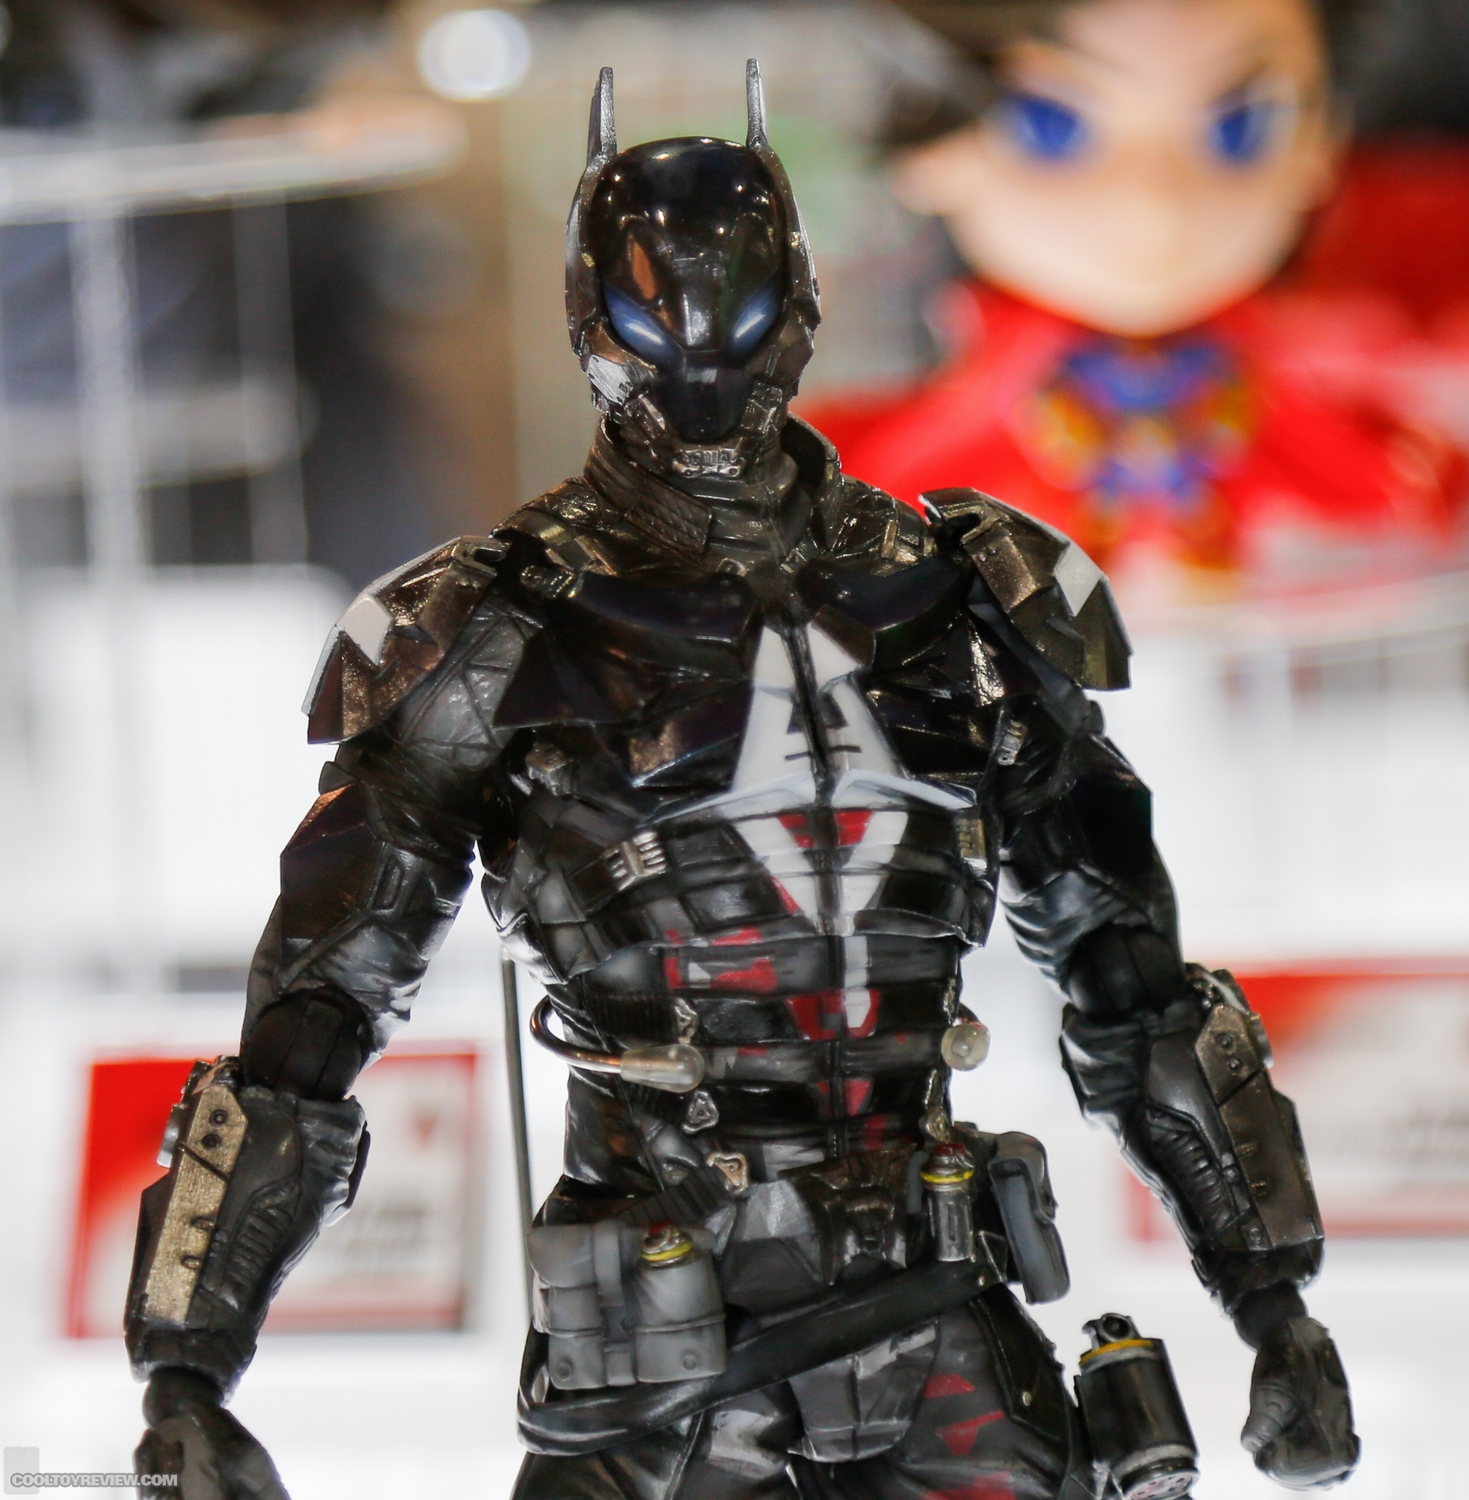 Coolest Toys 2015 : Cool toy review photo archive